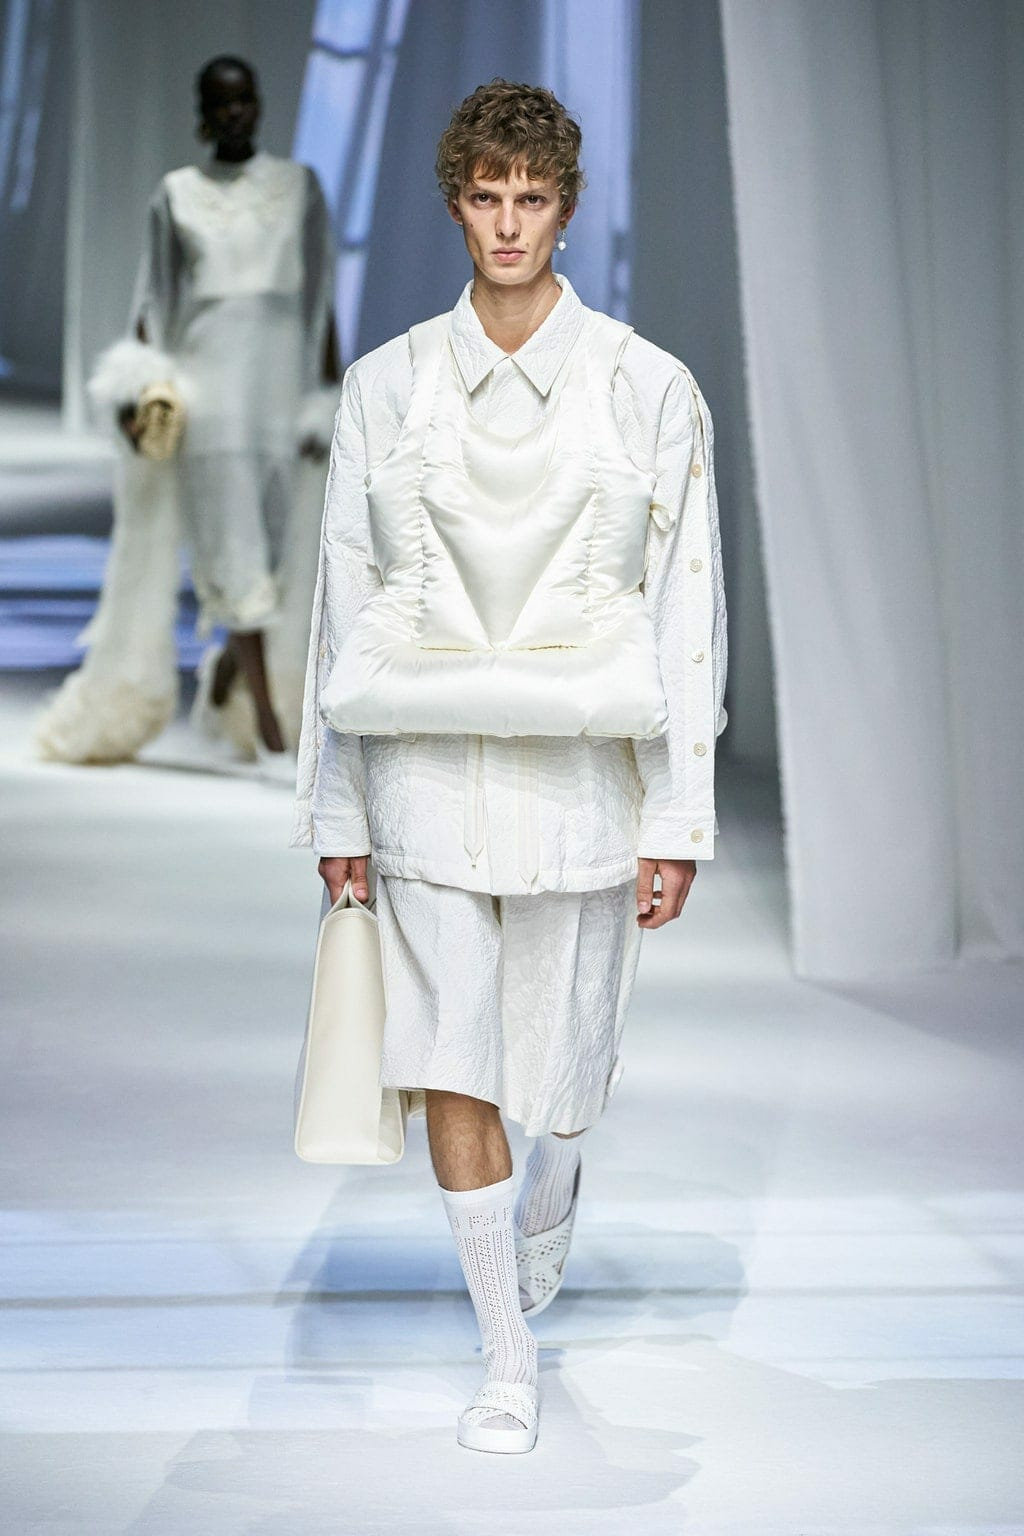 Fendi Spring Summer 2021 Milan. RUNWAY MAGAZINE ® Collections. RUNWAY NOW / RUNWAY NEW